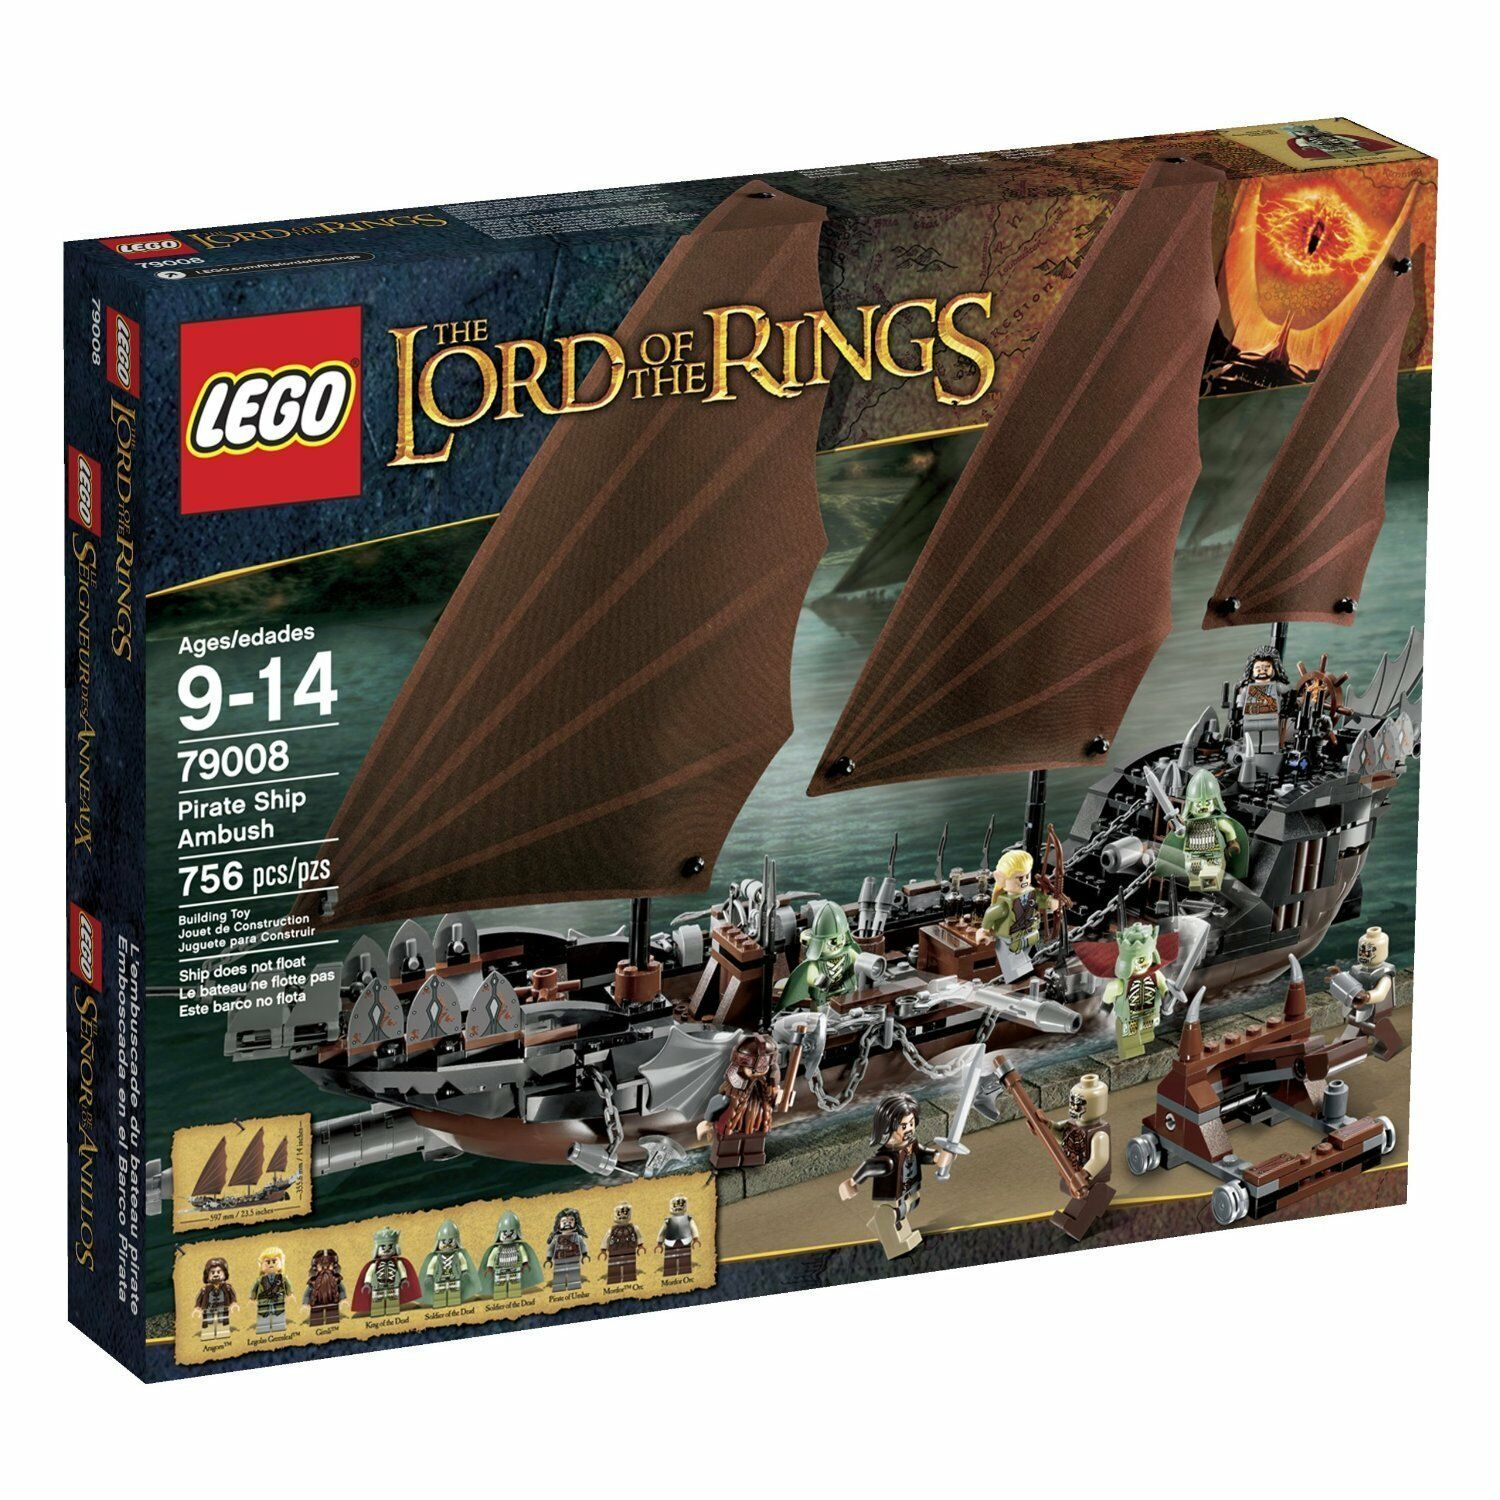 risparmiare fino all'80% Lego Lord of of of the Rings 79008 PIRATE SHIP AMautobusH Castle Knights Aragorn NISB  prima qualità ai consumatori